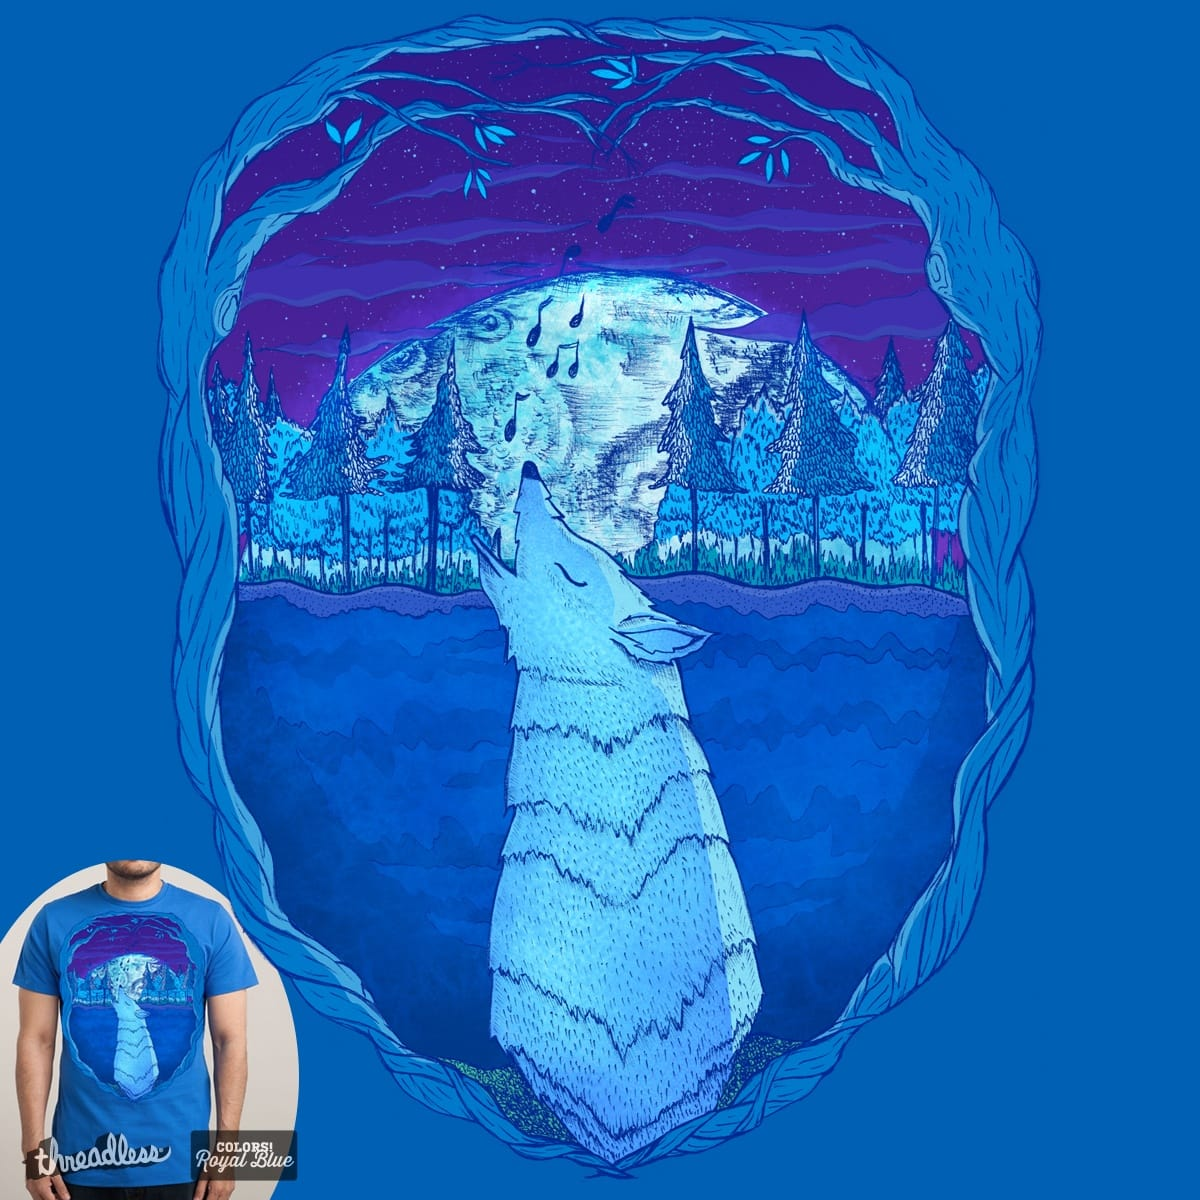 Once In A Blue Moon by nidya on Threadless